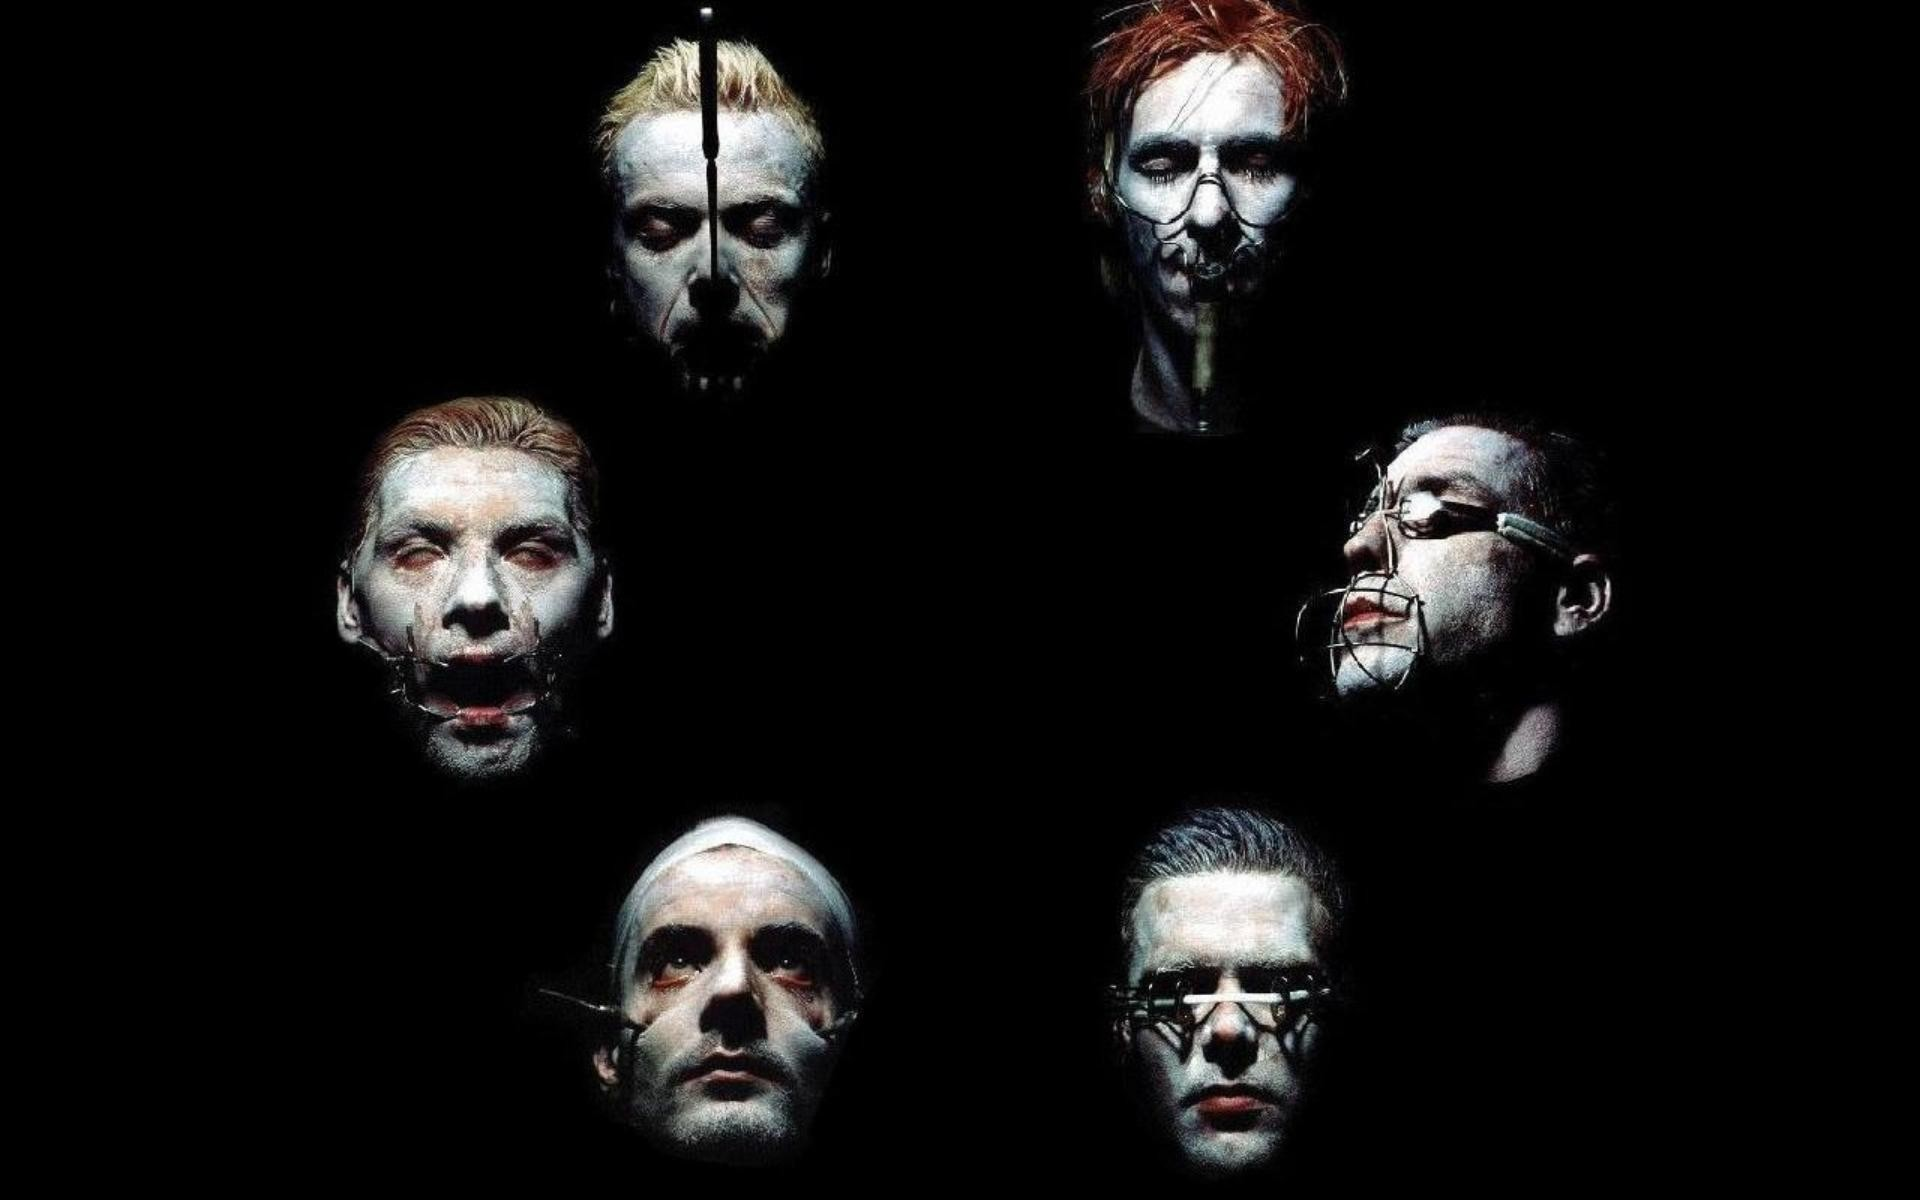 Wallpaper Rammstein, Band, Members, Faces, Horror